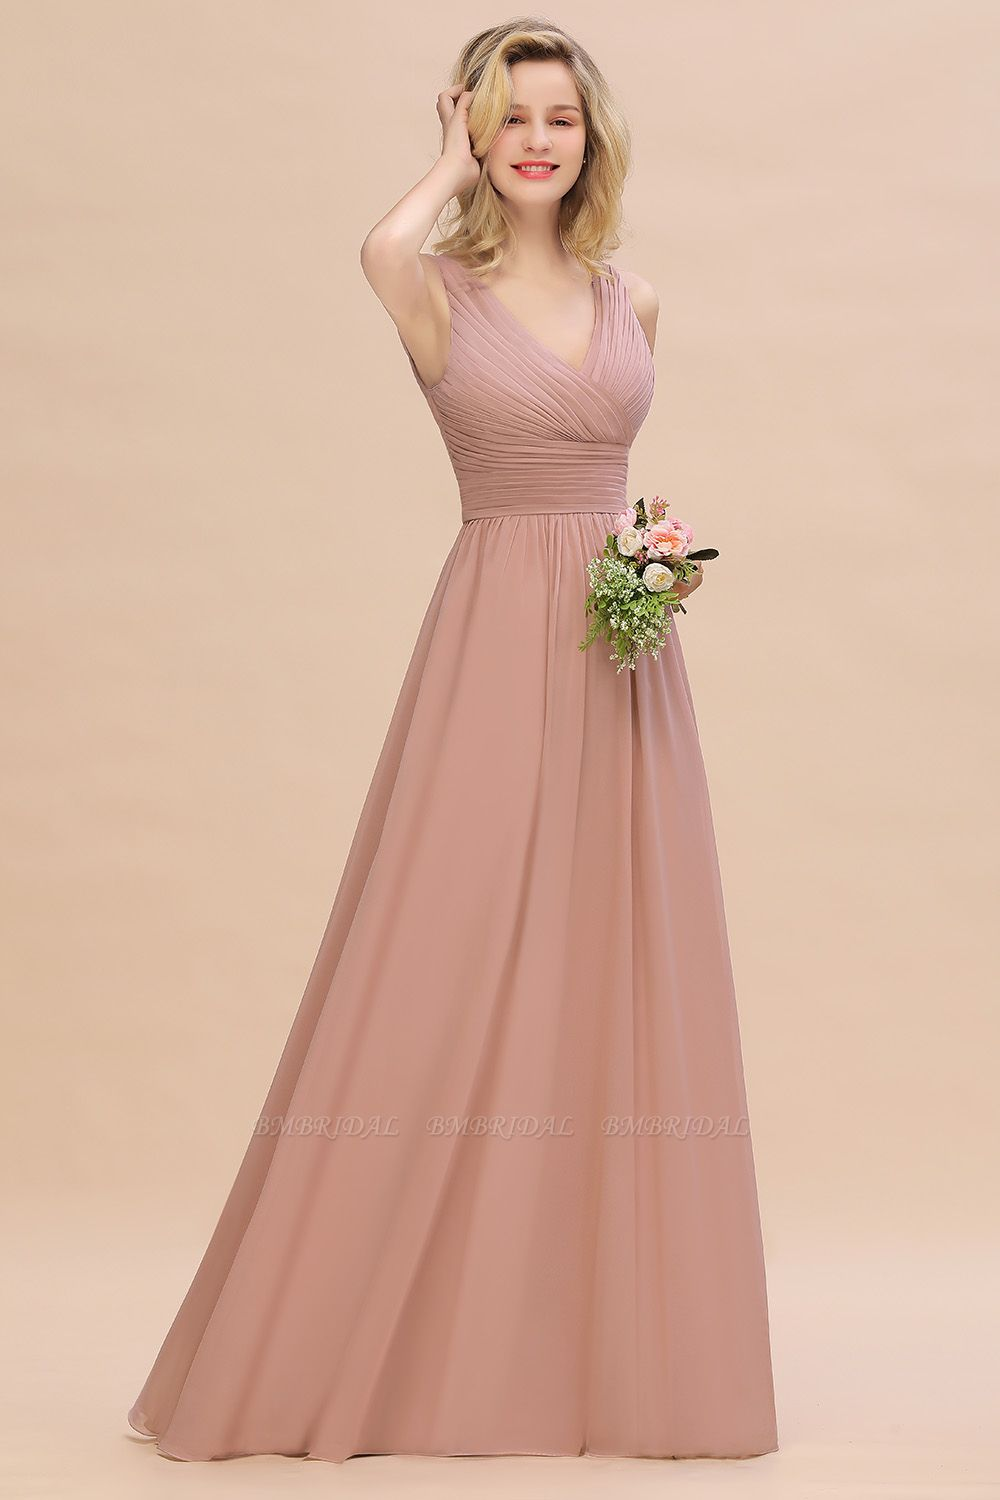 Say Yes To BMbridal's Cheap Bridesmaid Dresses